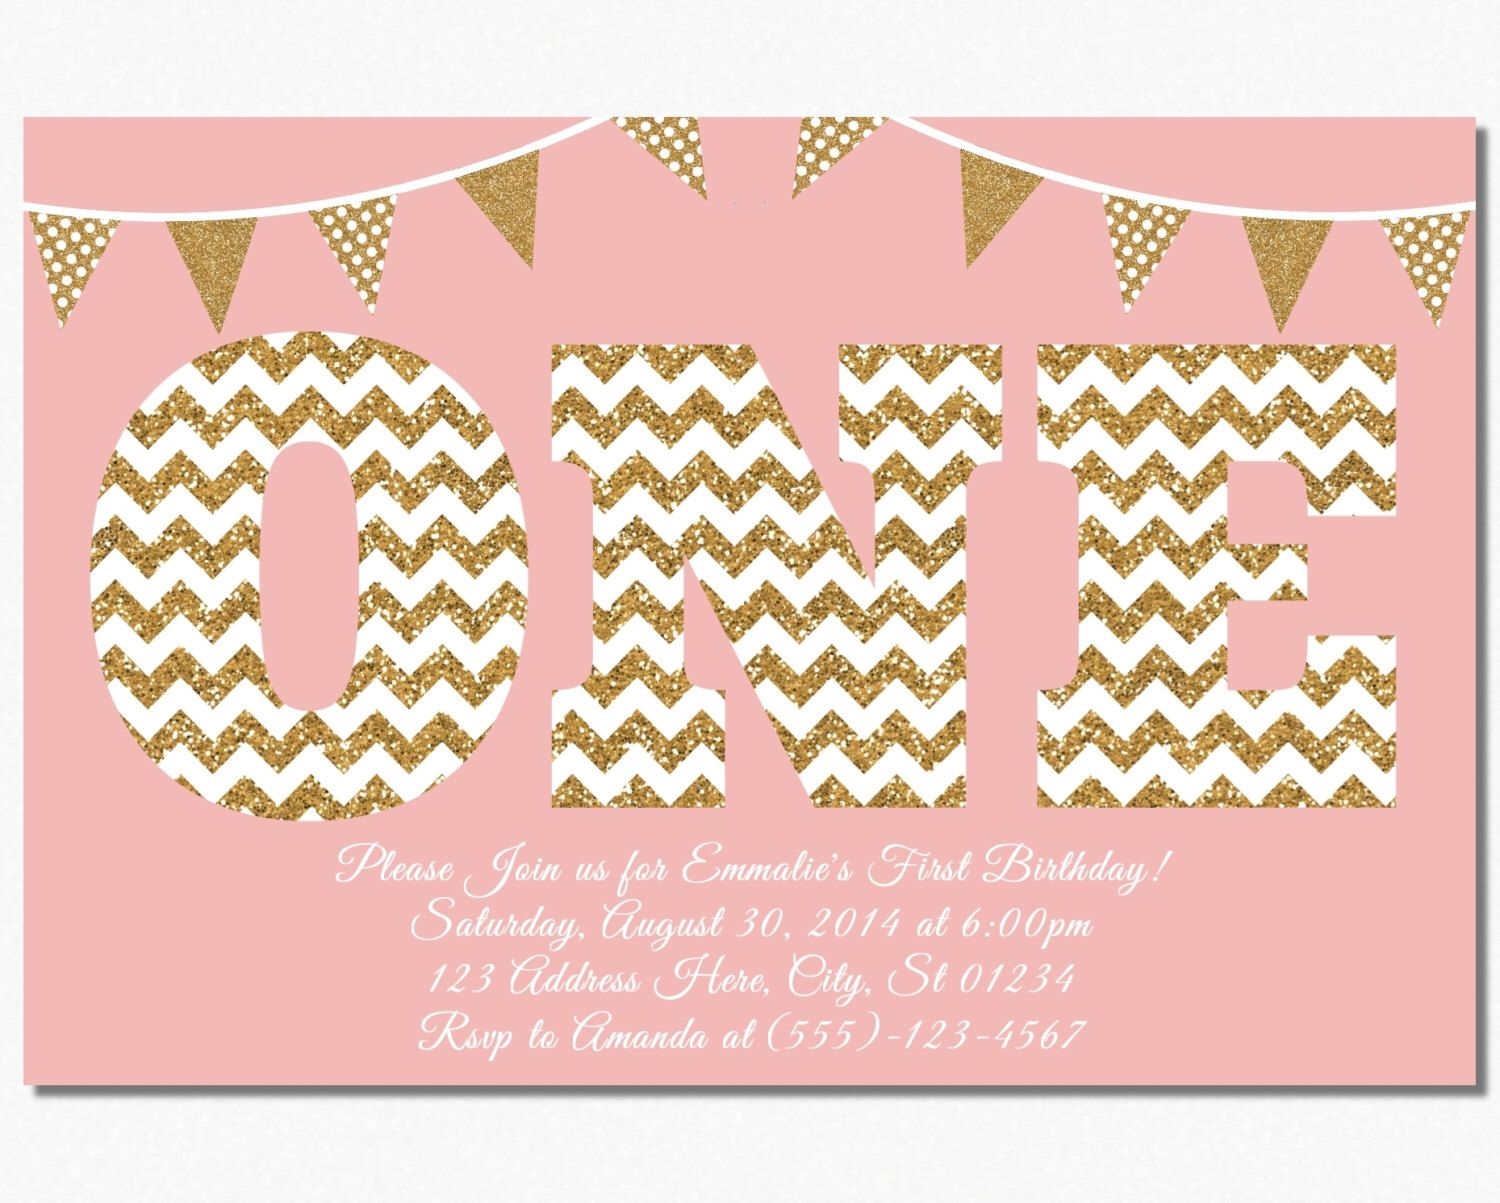 First birthday invitation blush pink and gold 1st birthday first birthday invitation blush pink and gold 1st birthday invitations by puggyprints on etsy https filmwisefo